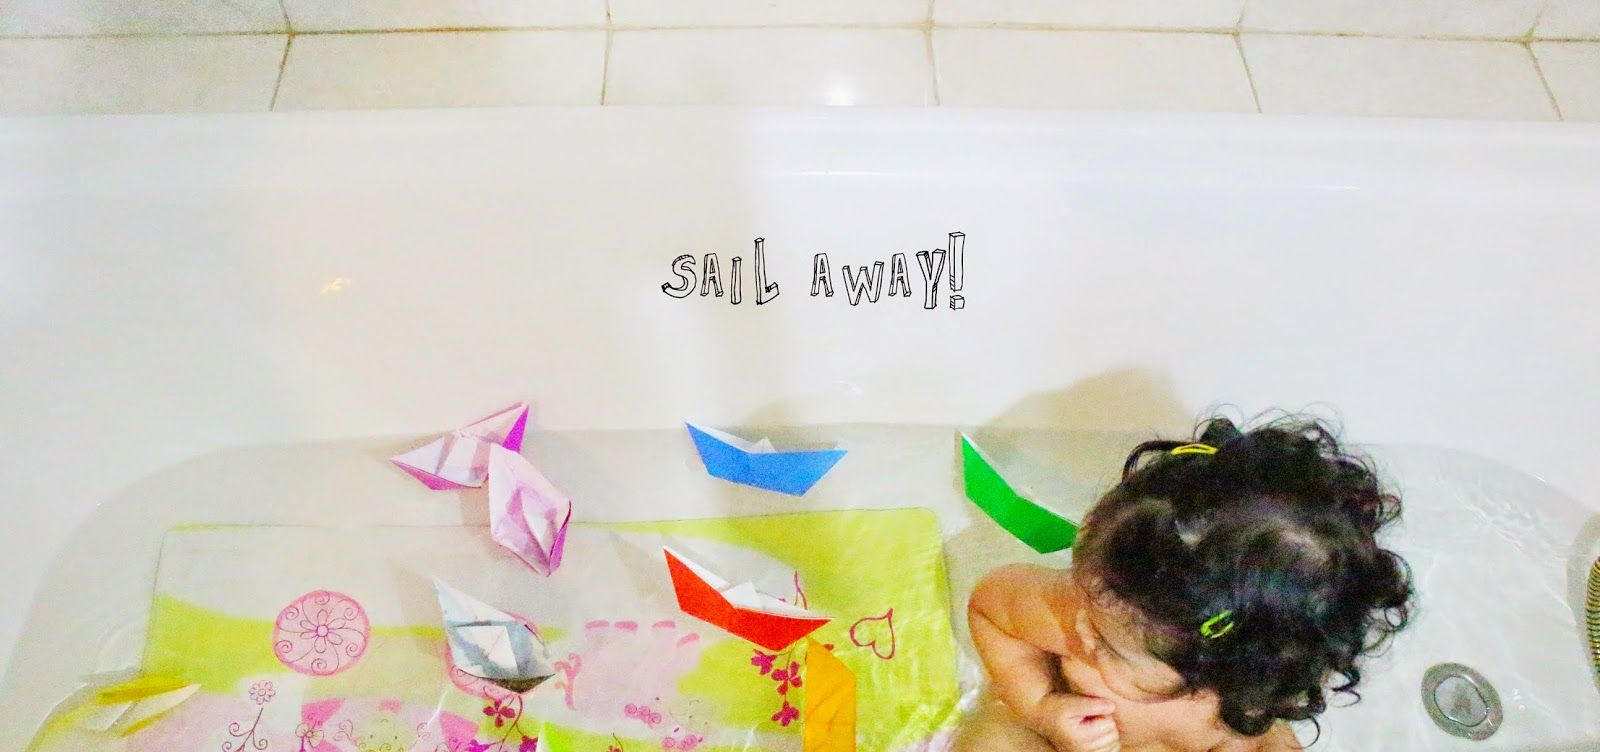 DIY - Colorful Paper Boats. Play Ideas for Toddler/Kids. www.lifeatarcilland.com